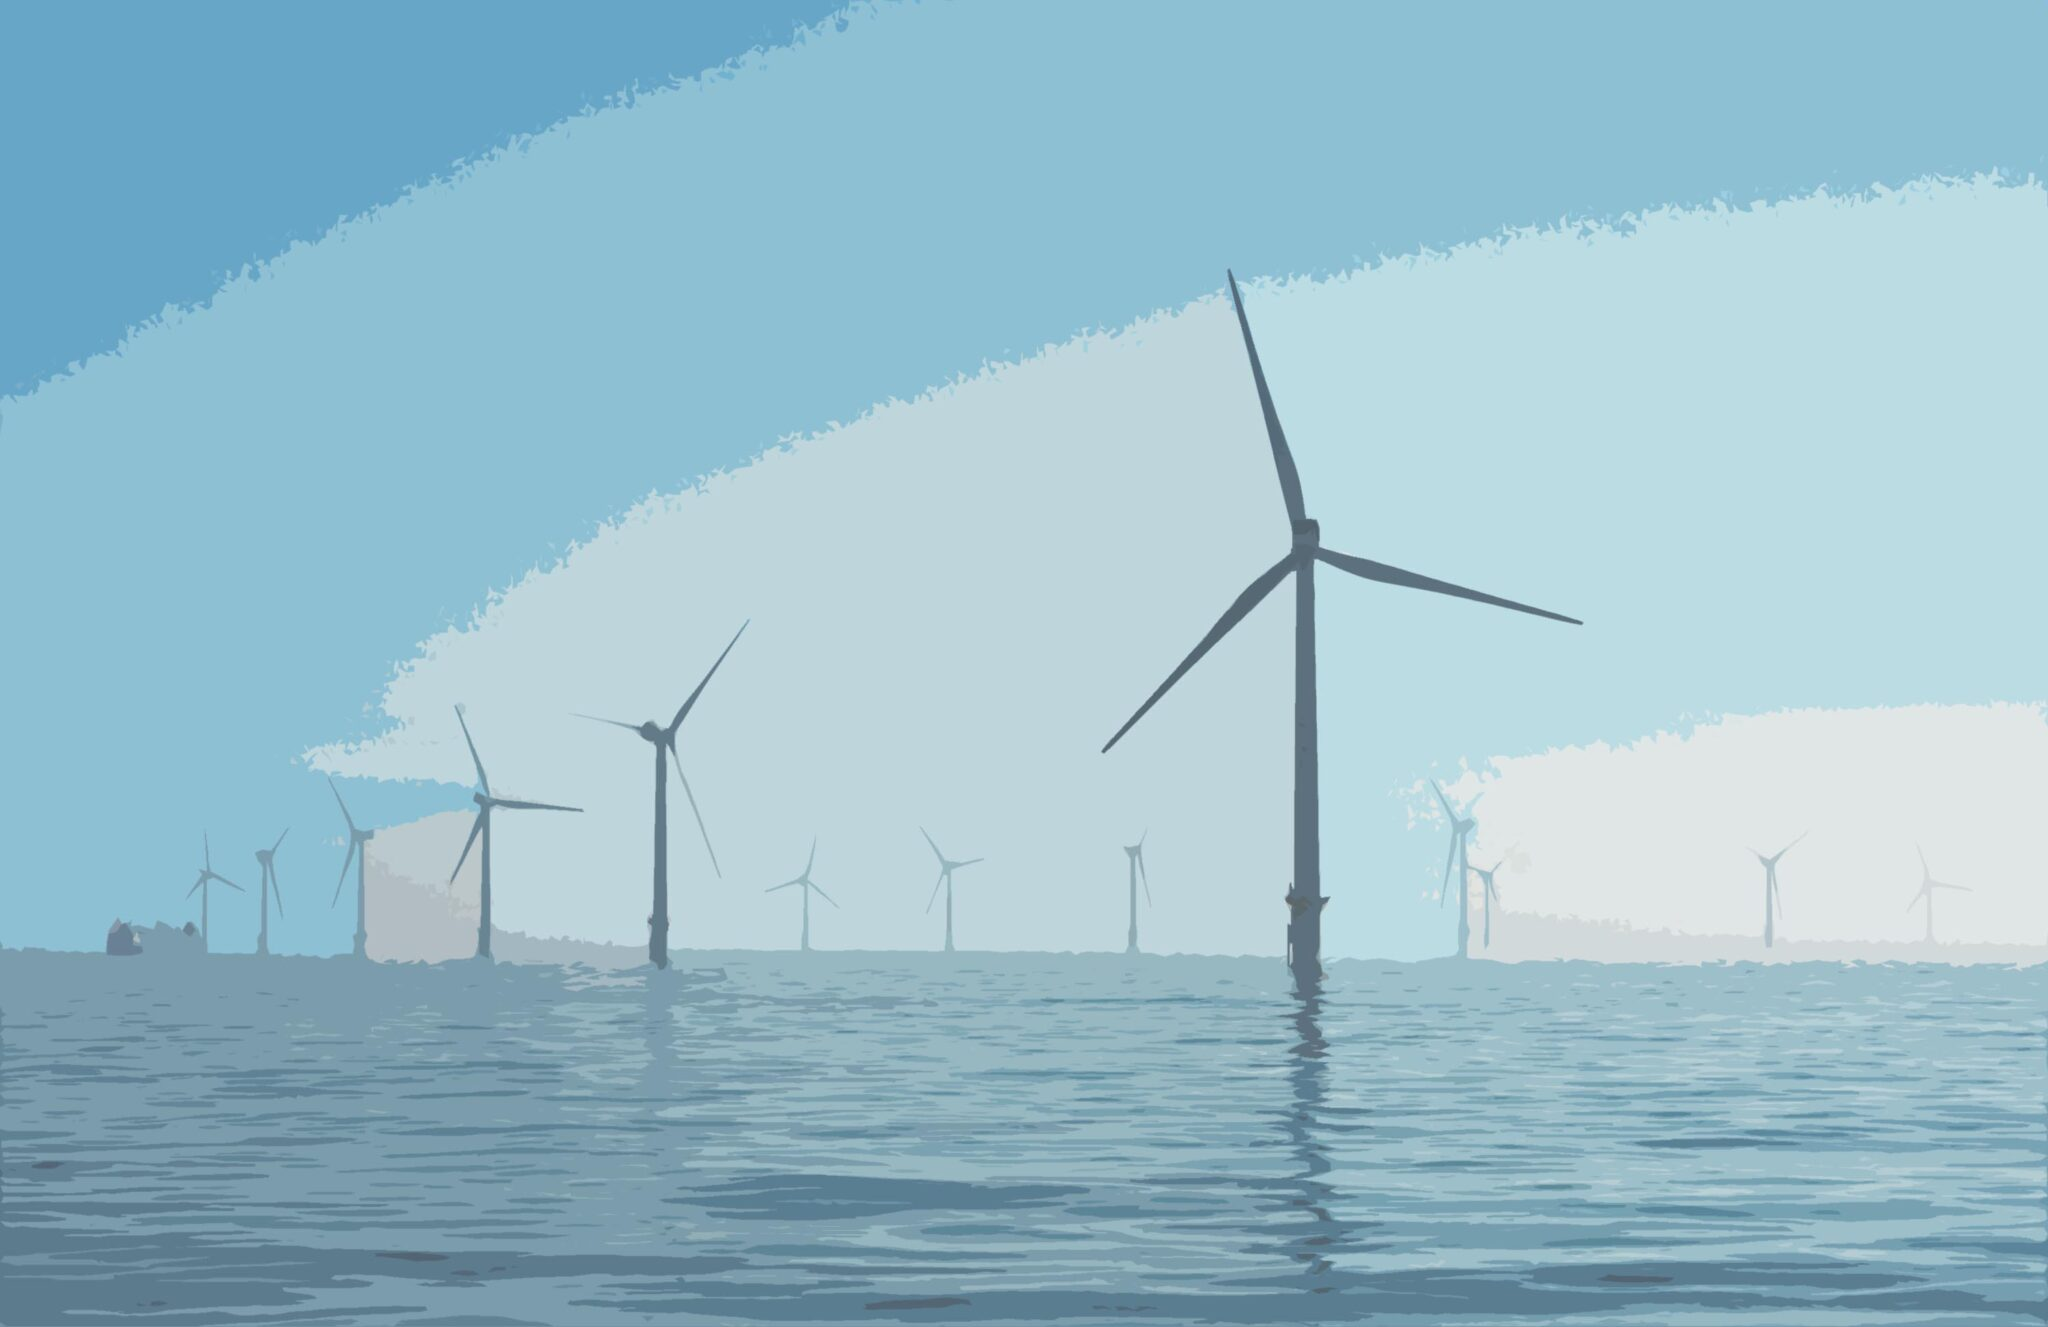 UK's FCA looks at climate change and ESGs